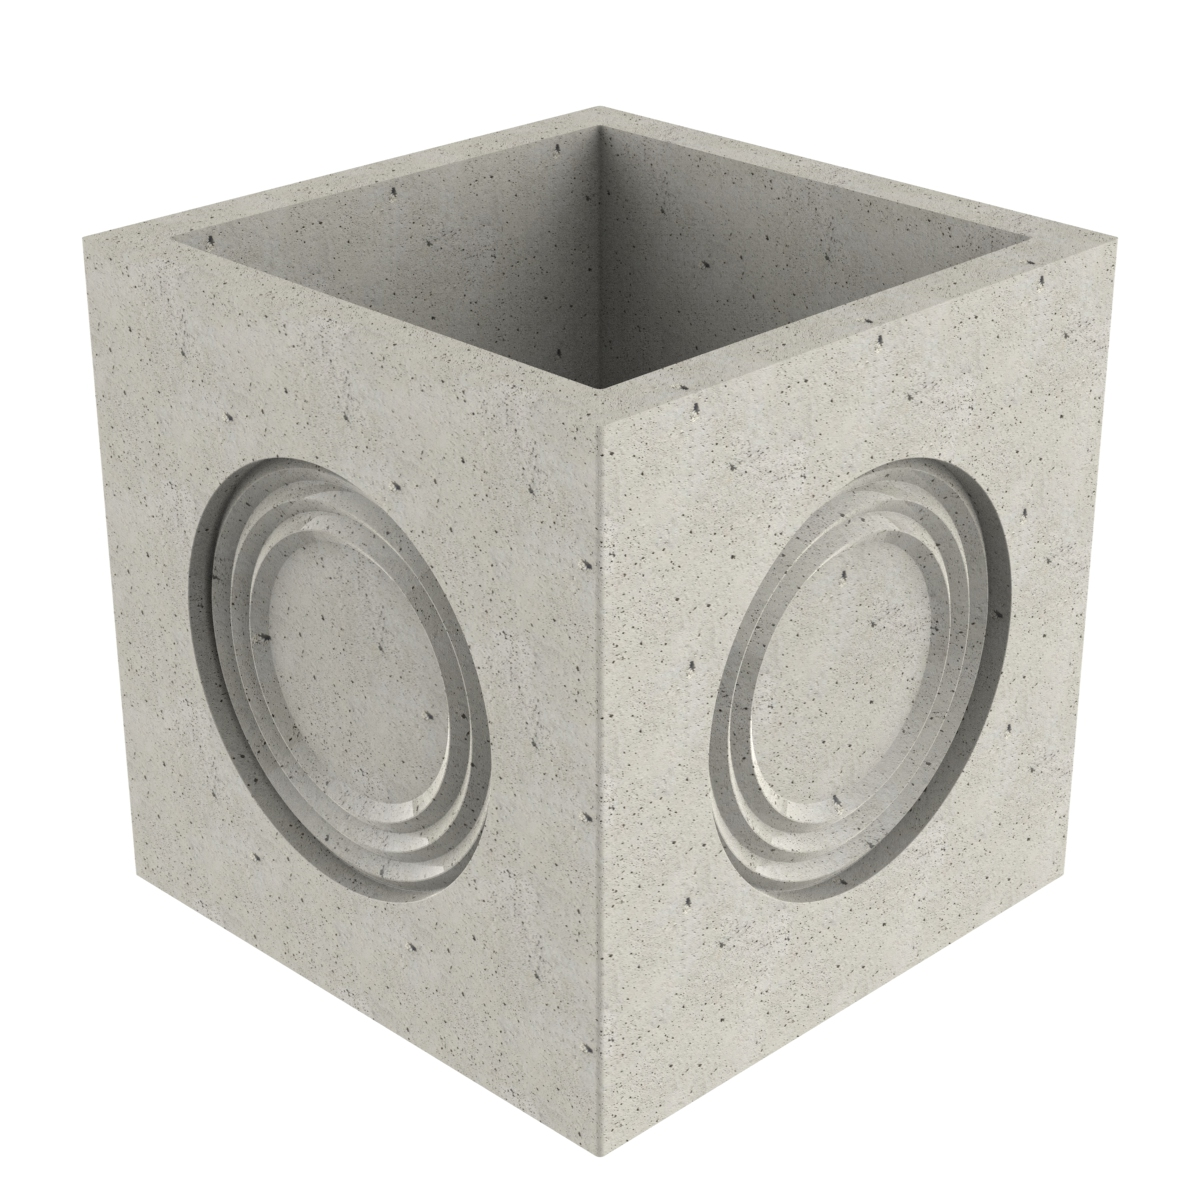 Premanufactured precast box of concrete without wall-plate 490x490x490